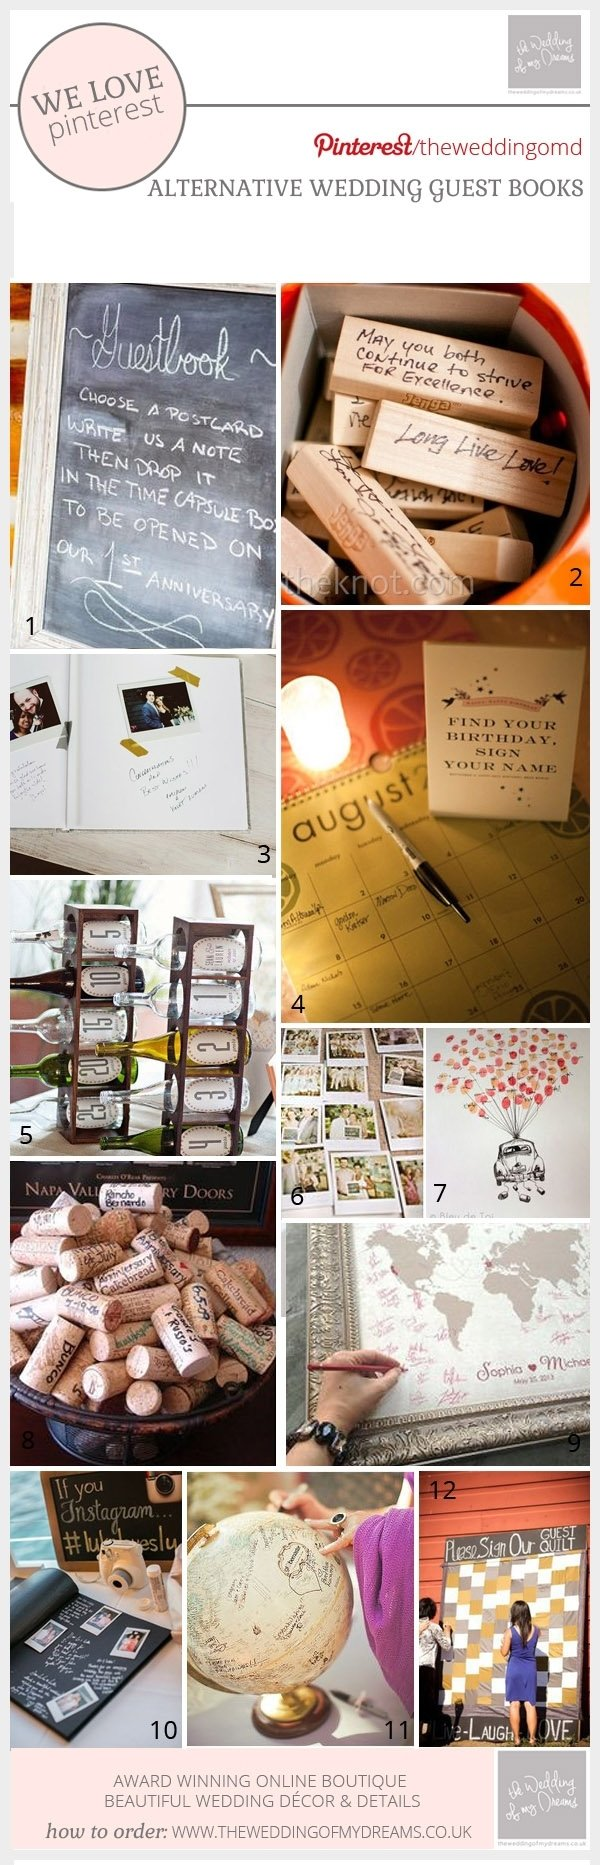 10 Most Recommended Alternative Wedding Guest Book Ideas wedding guest book ideas